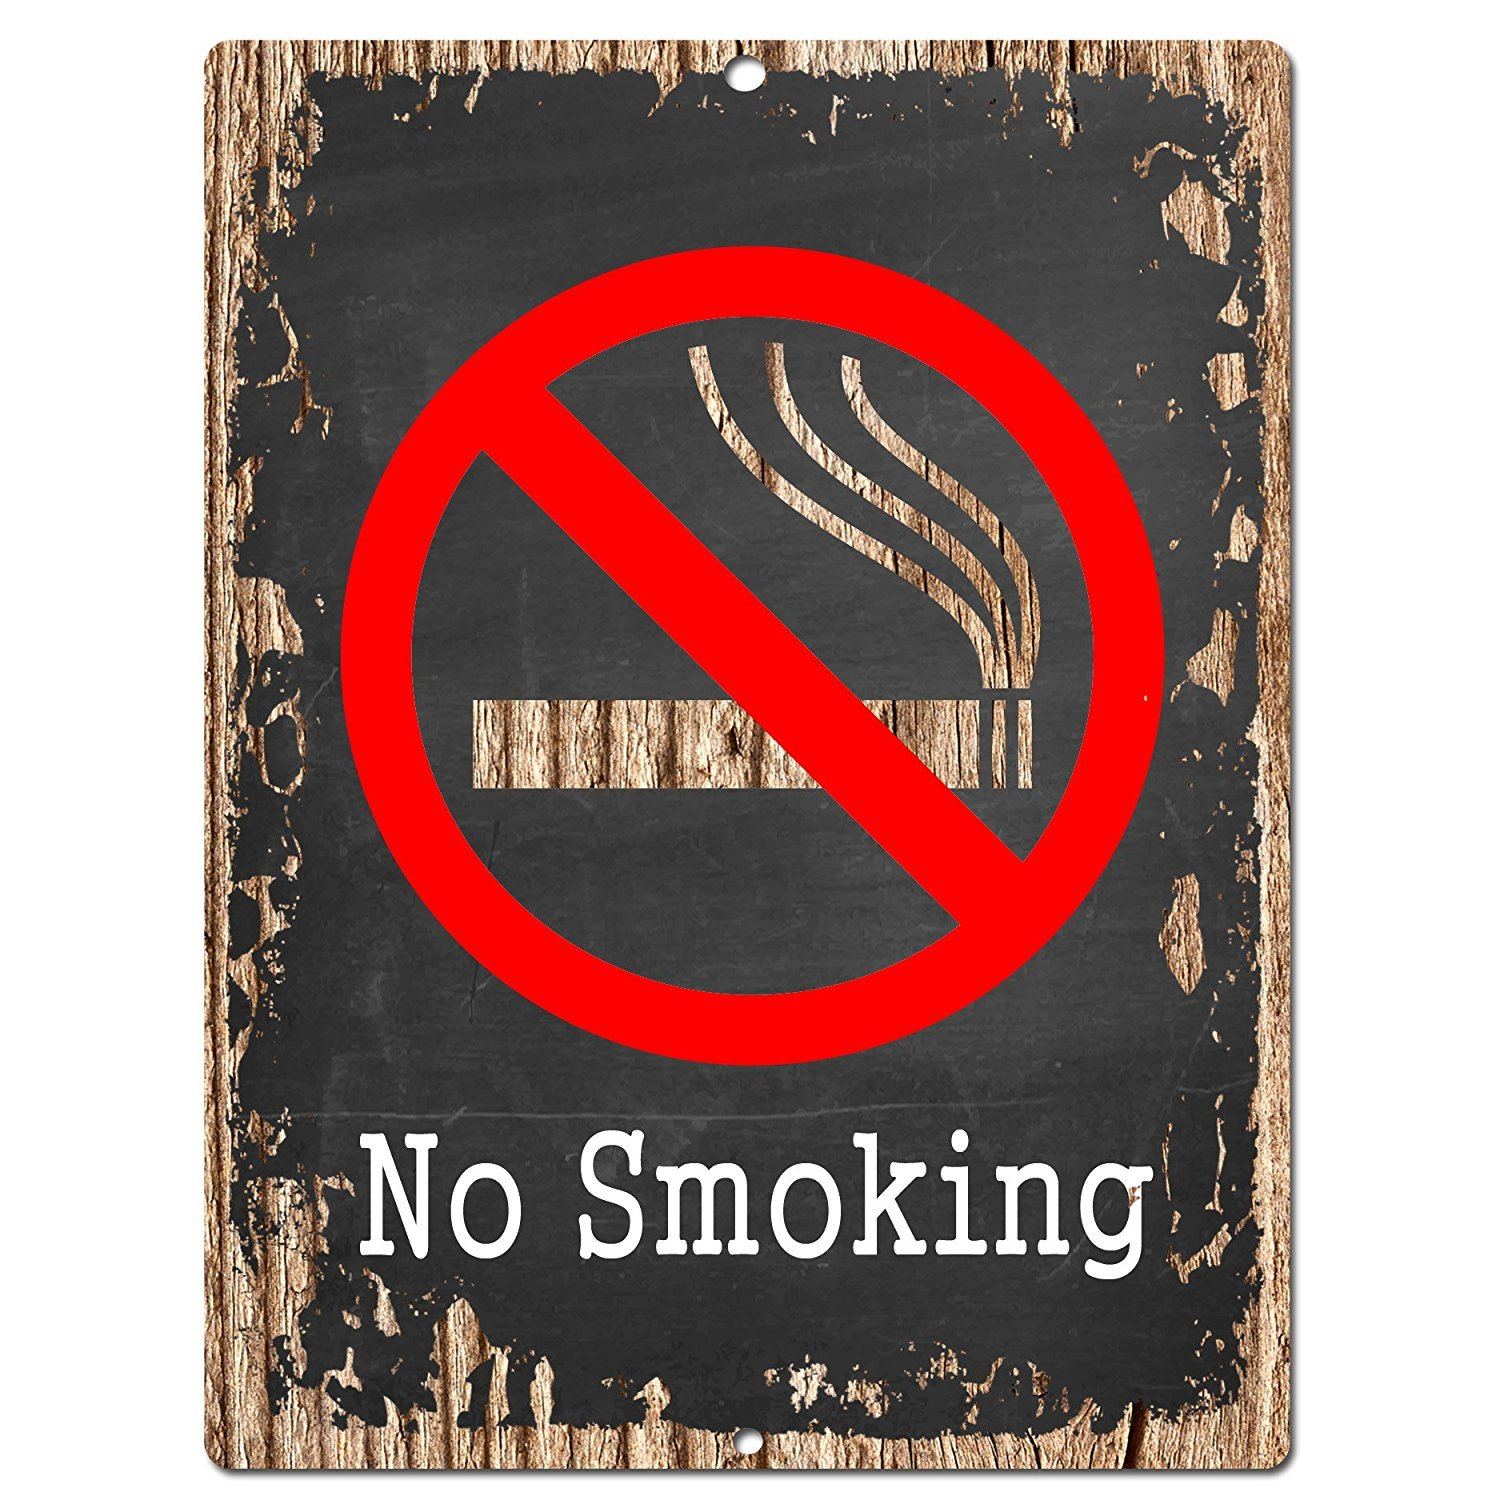 No Smoking Chic Sign Rustic Vintage Chalkboard style Retro Kitchen Bar Pub Coffee Shop Wall Decor 9x12 Metal Plate Sign Home Store Decor Plaques